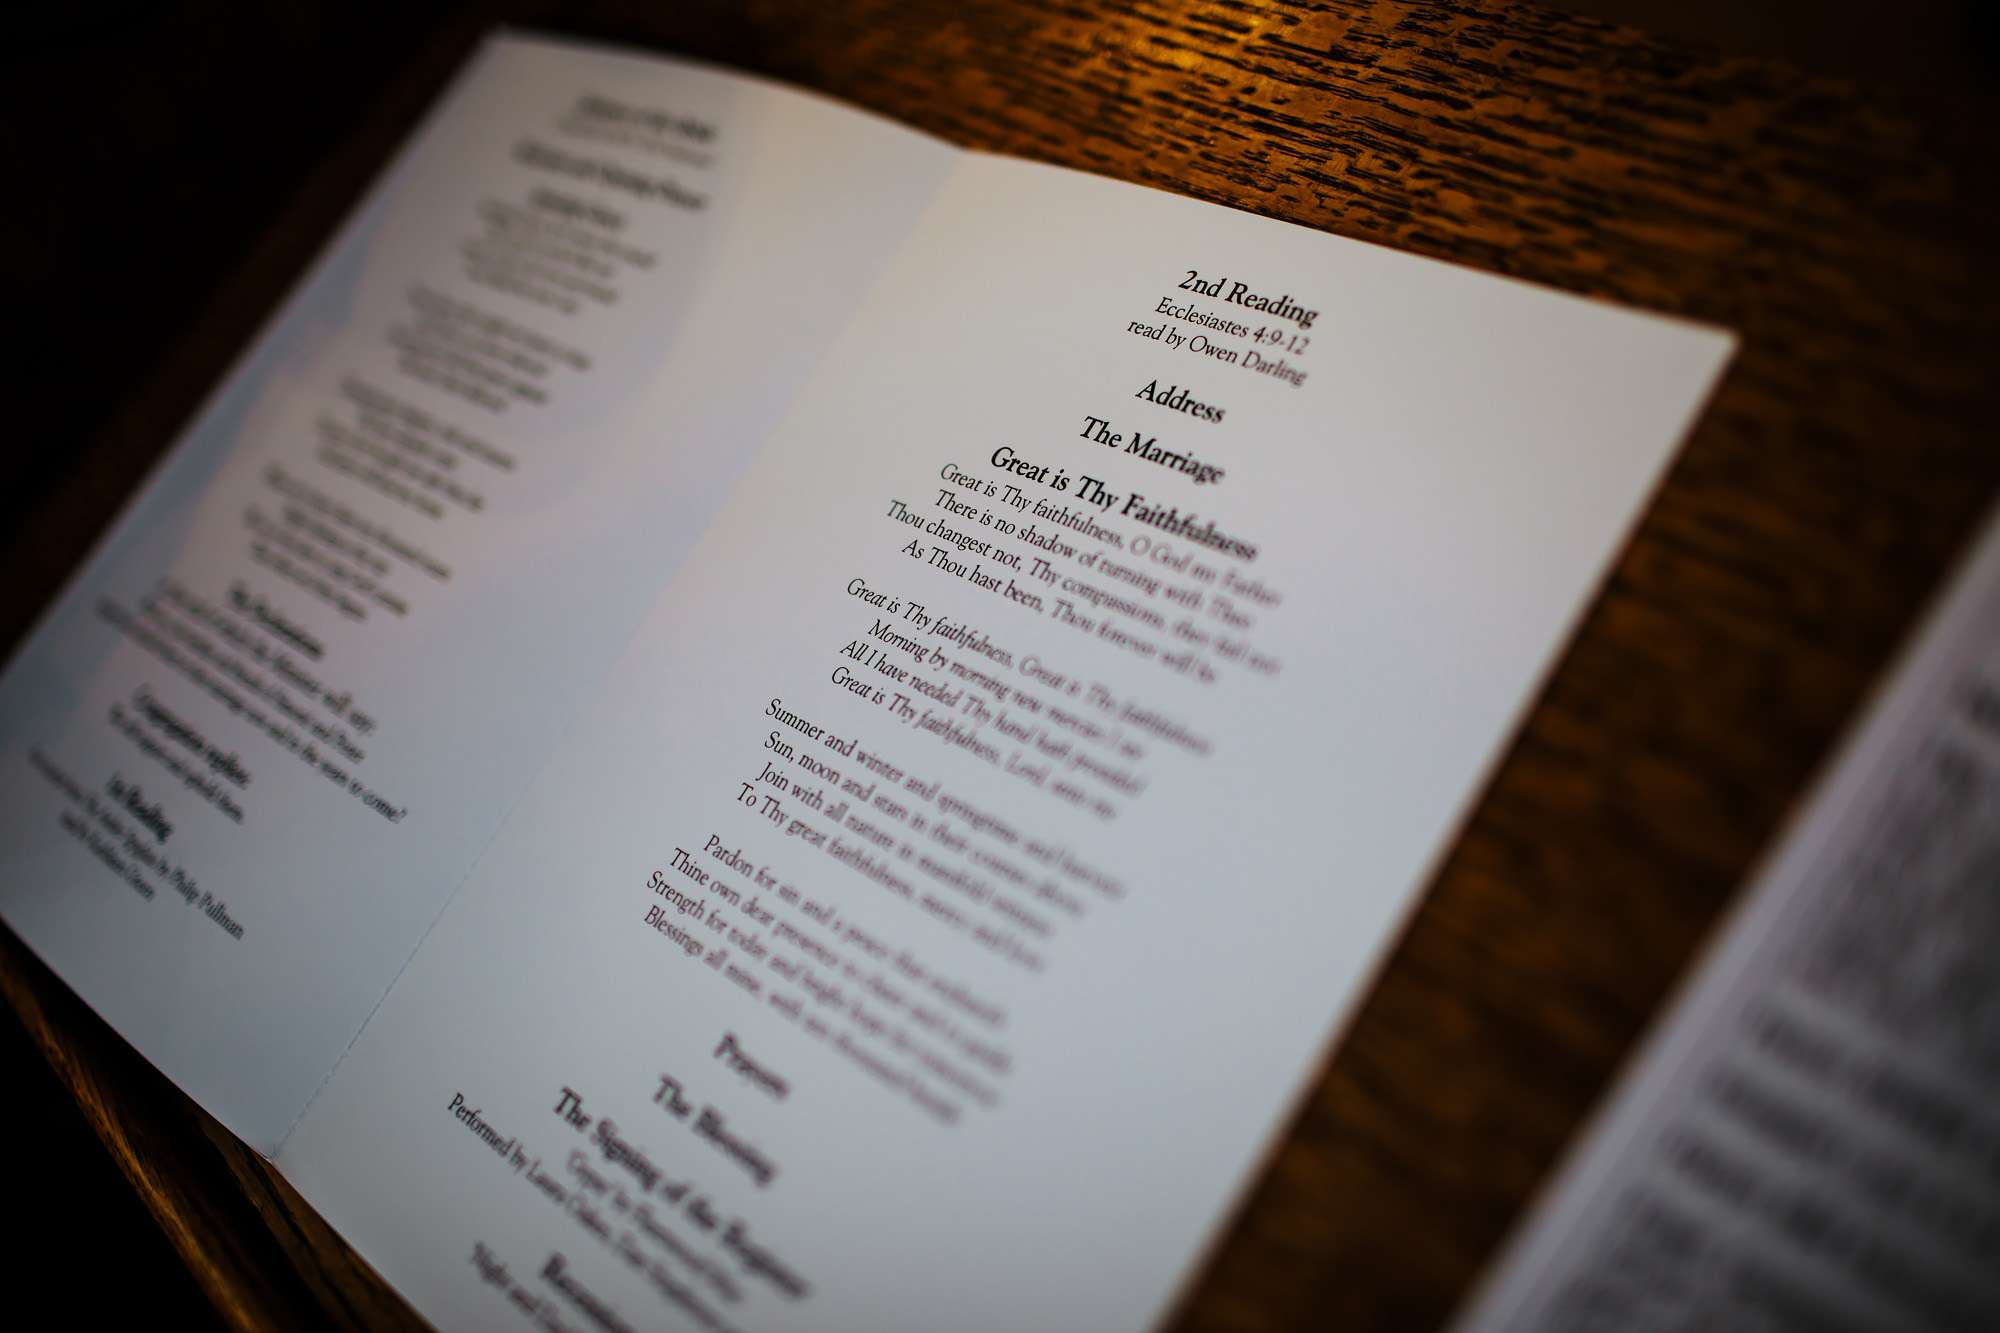 Order of service at a wedding in Leeds